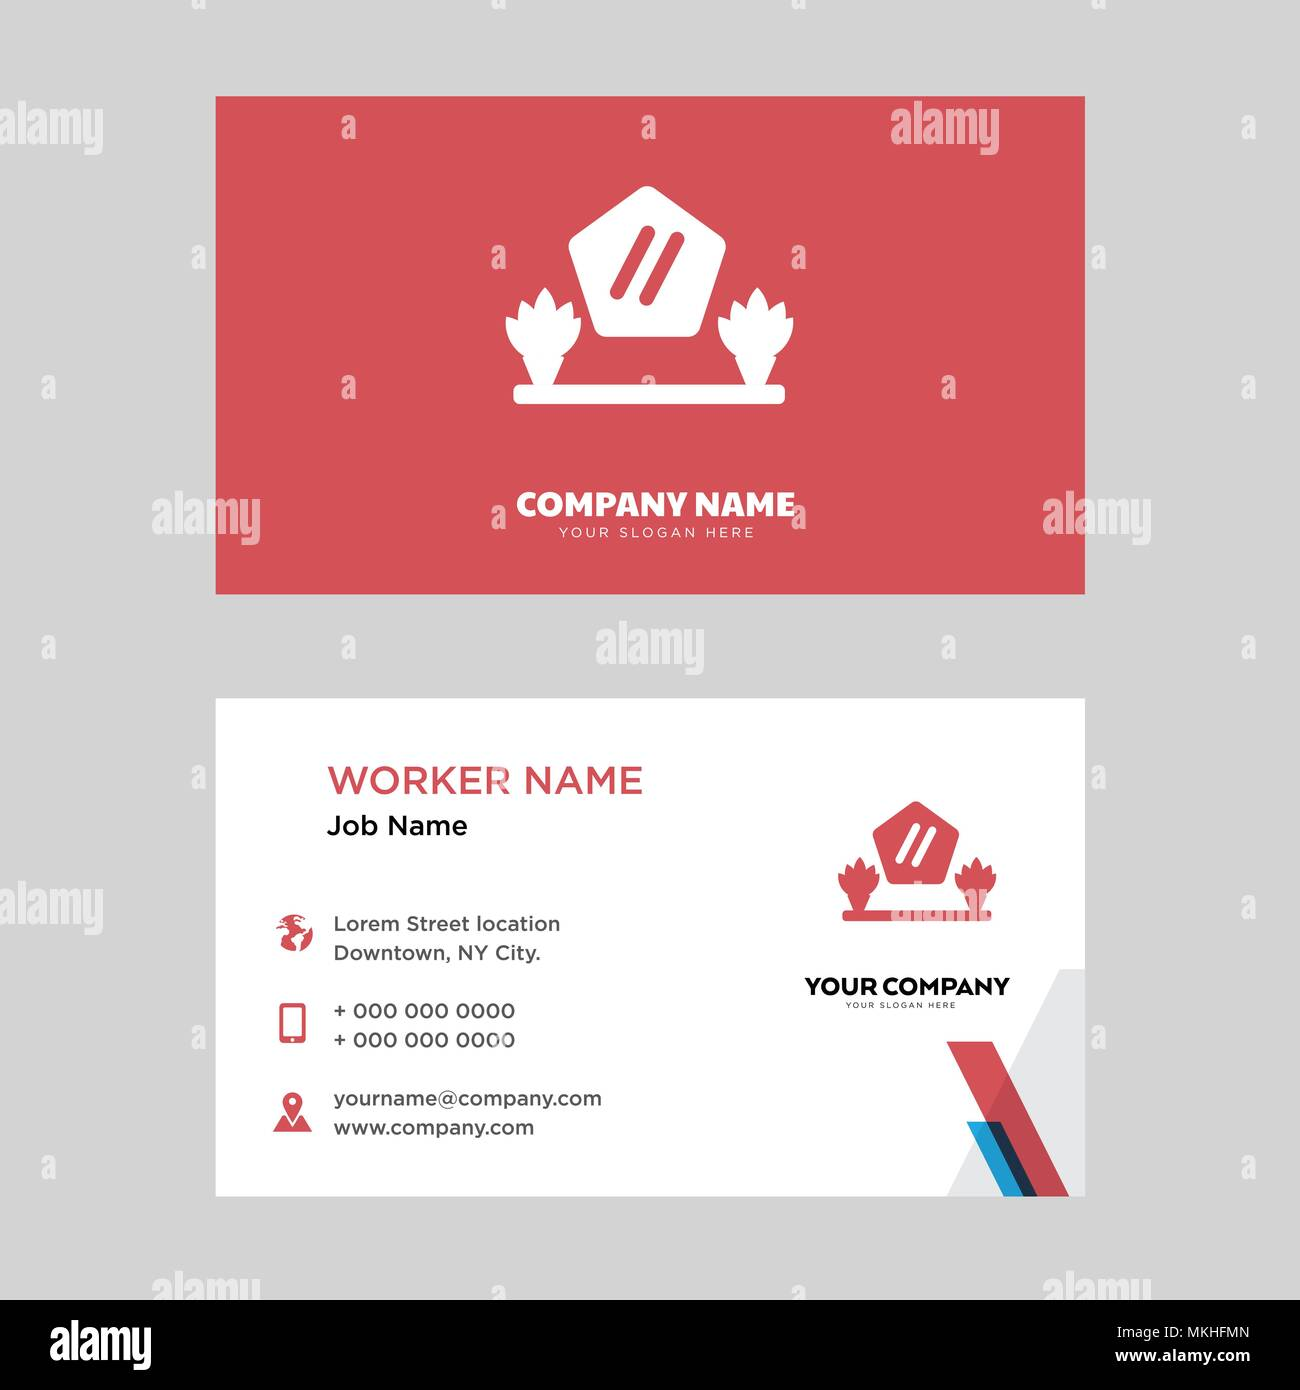 Mirror business card design template, Visiting for your company ...